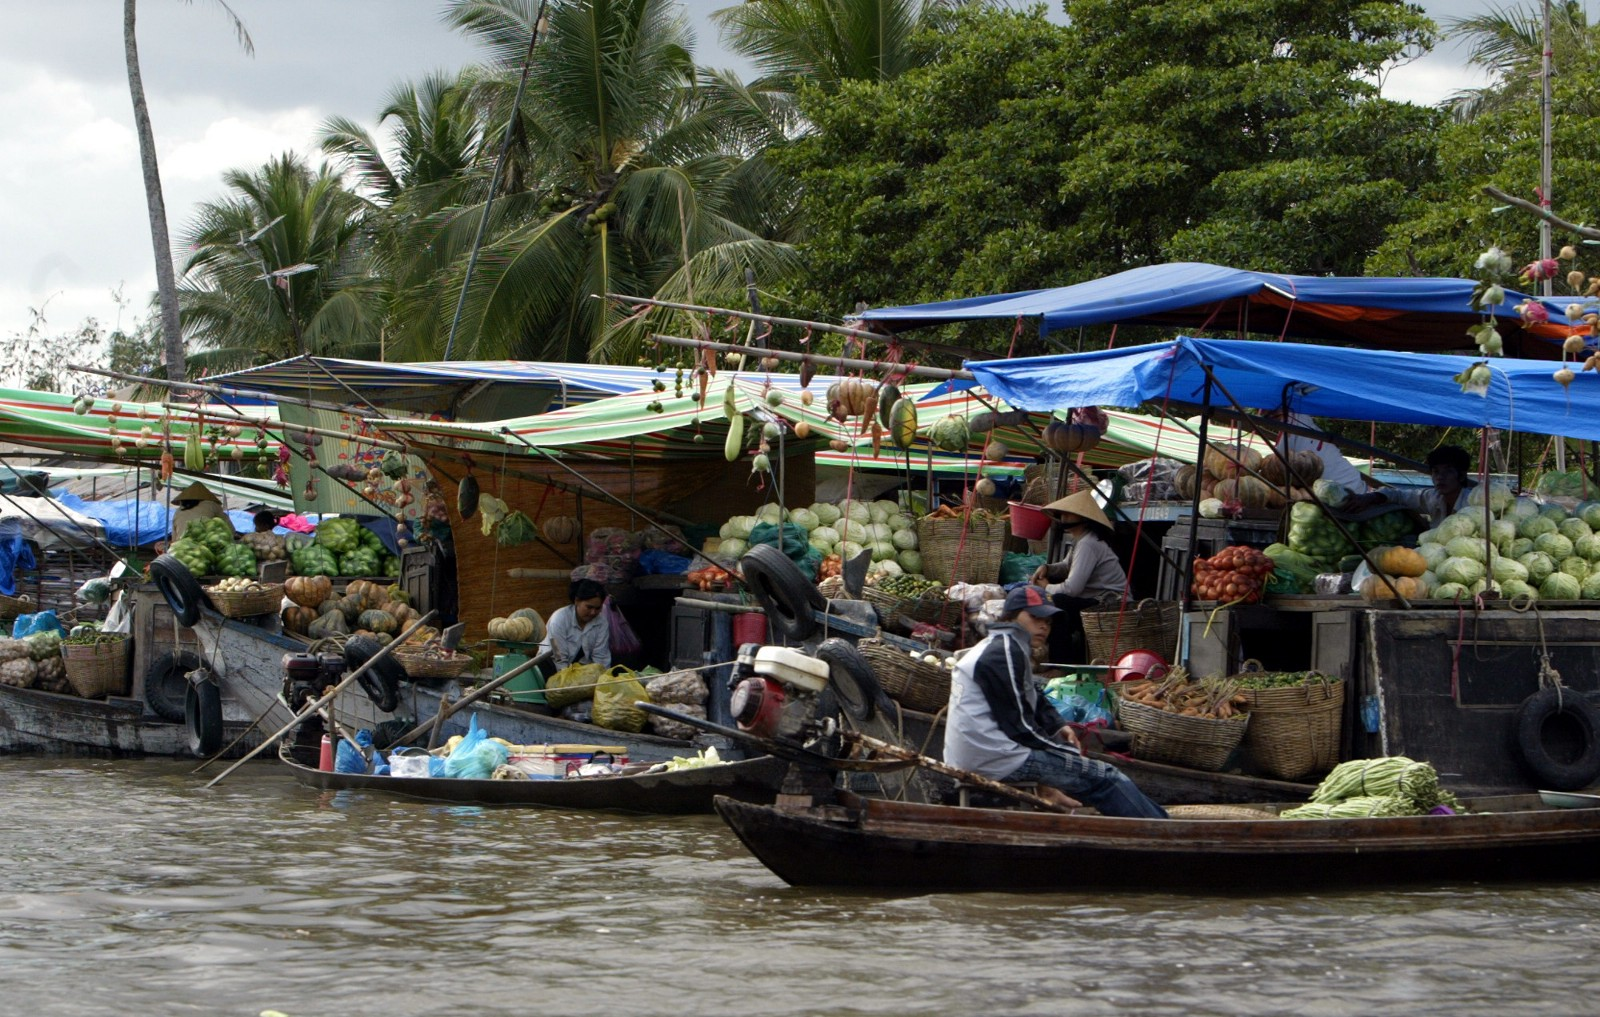 Boats loaded with fruits and vegetables on the Mekong river.